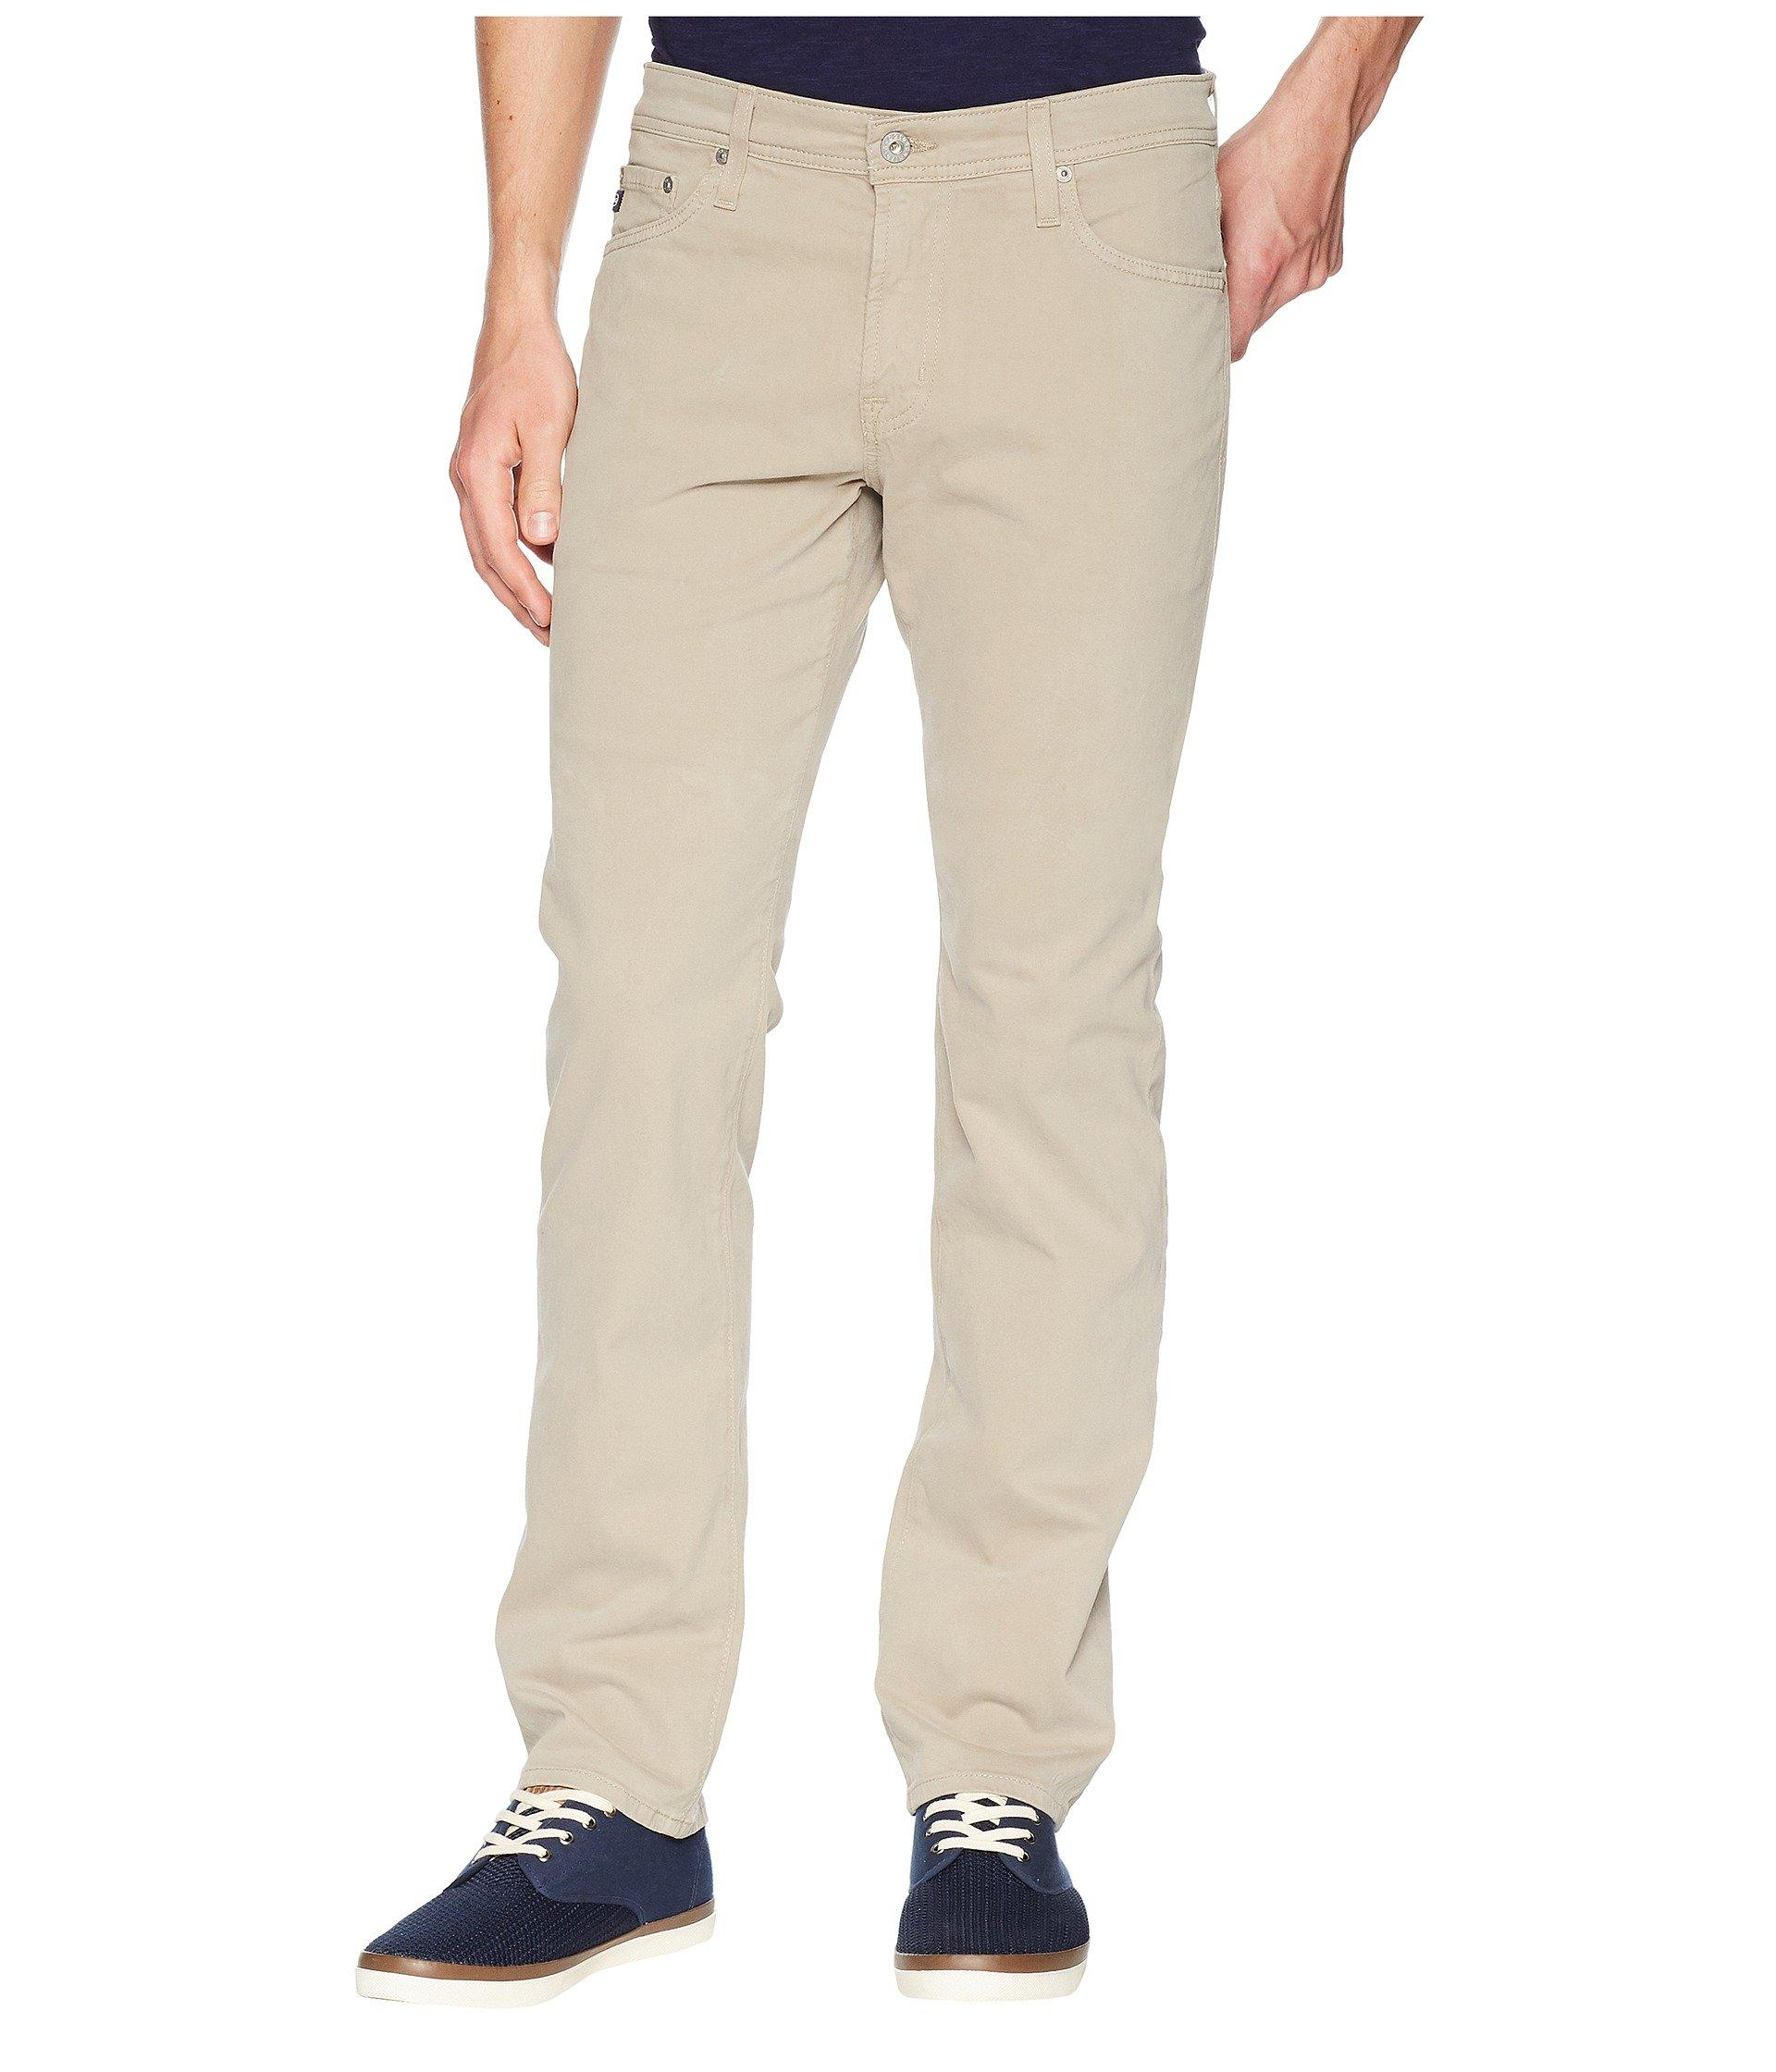 cd6fd1e9 Lyst - AG Jeans The Graduate Tailored Straight Sud Sueded Stretch ...